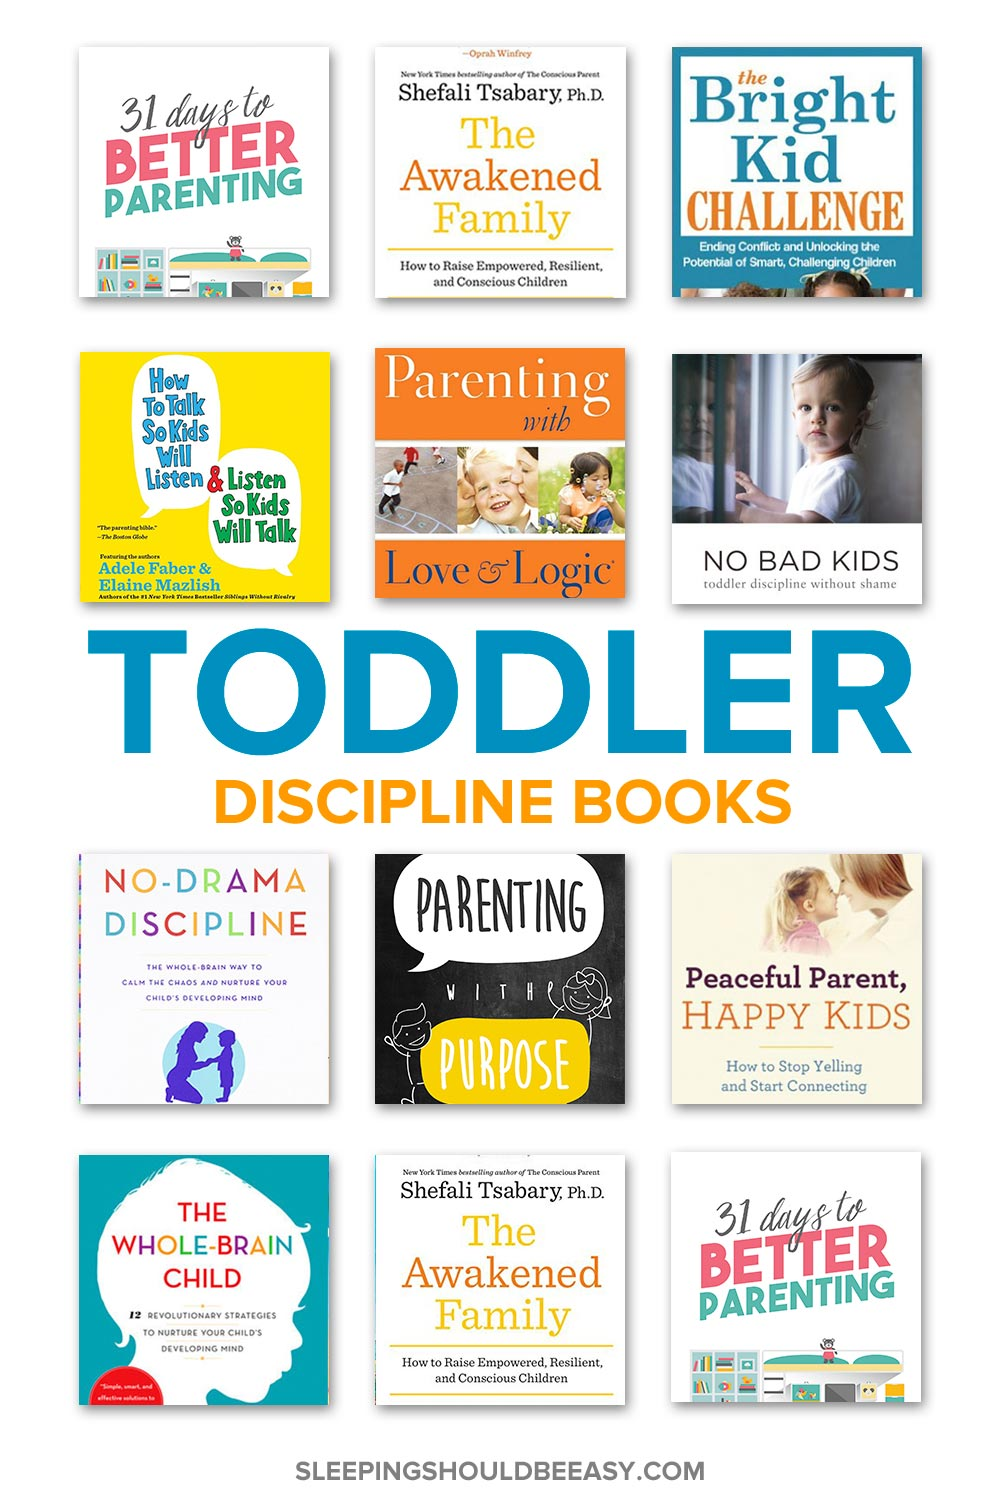 A collection of toddler discipline books